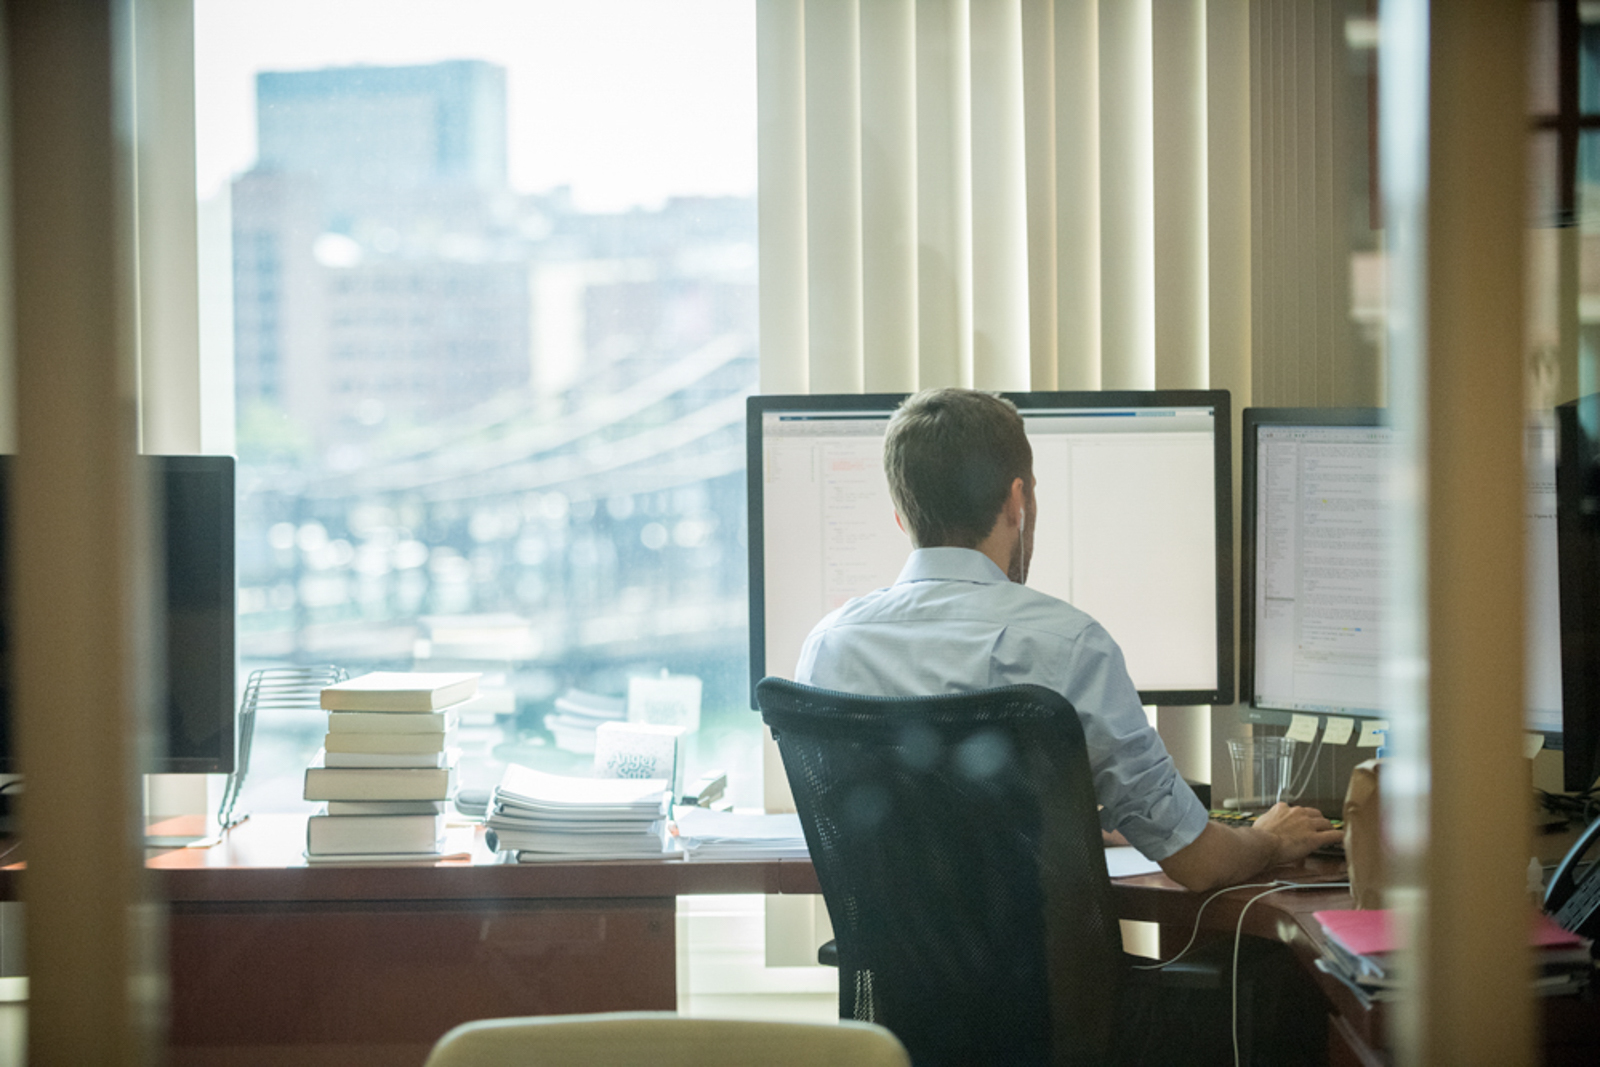 Environmental image of man sitting in front of a computer, with back facing the camera